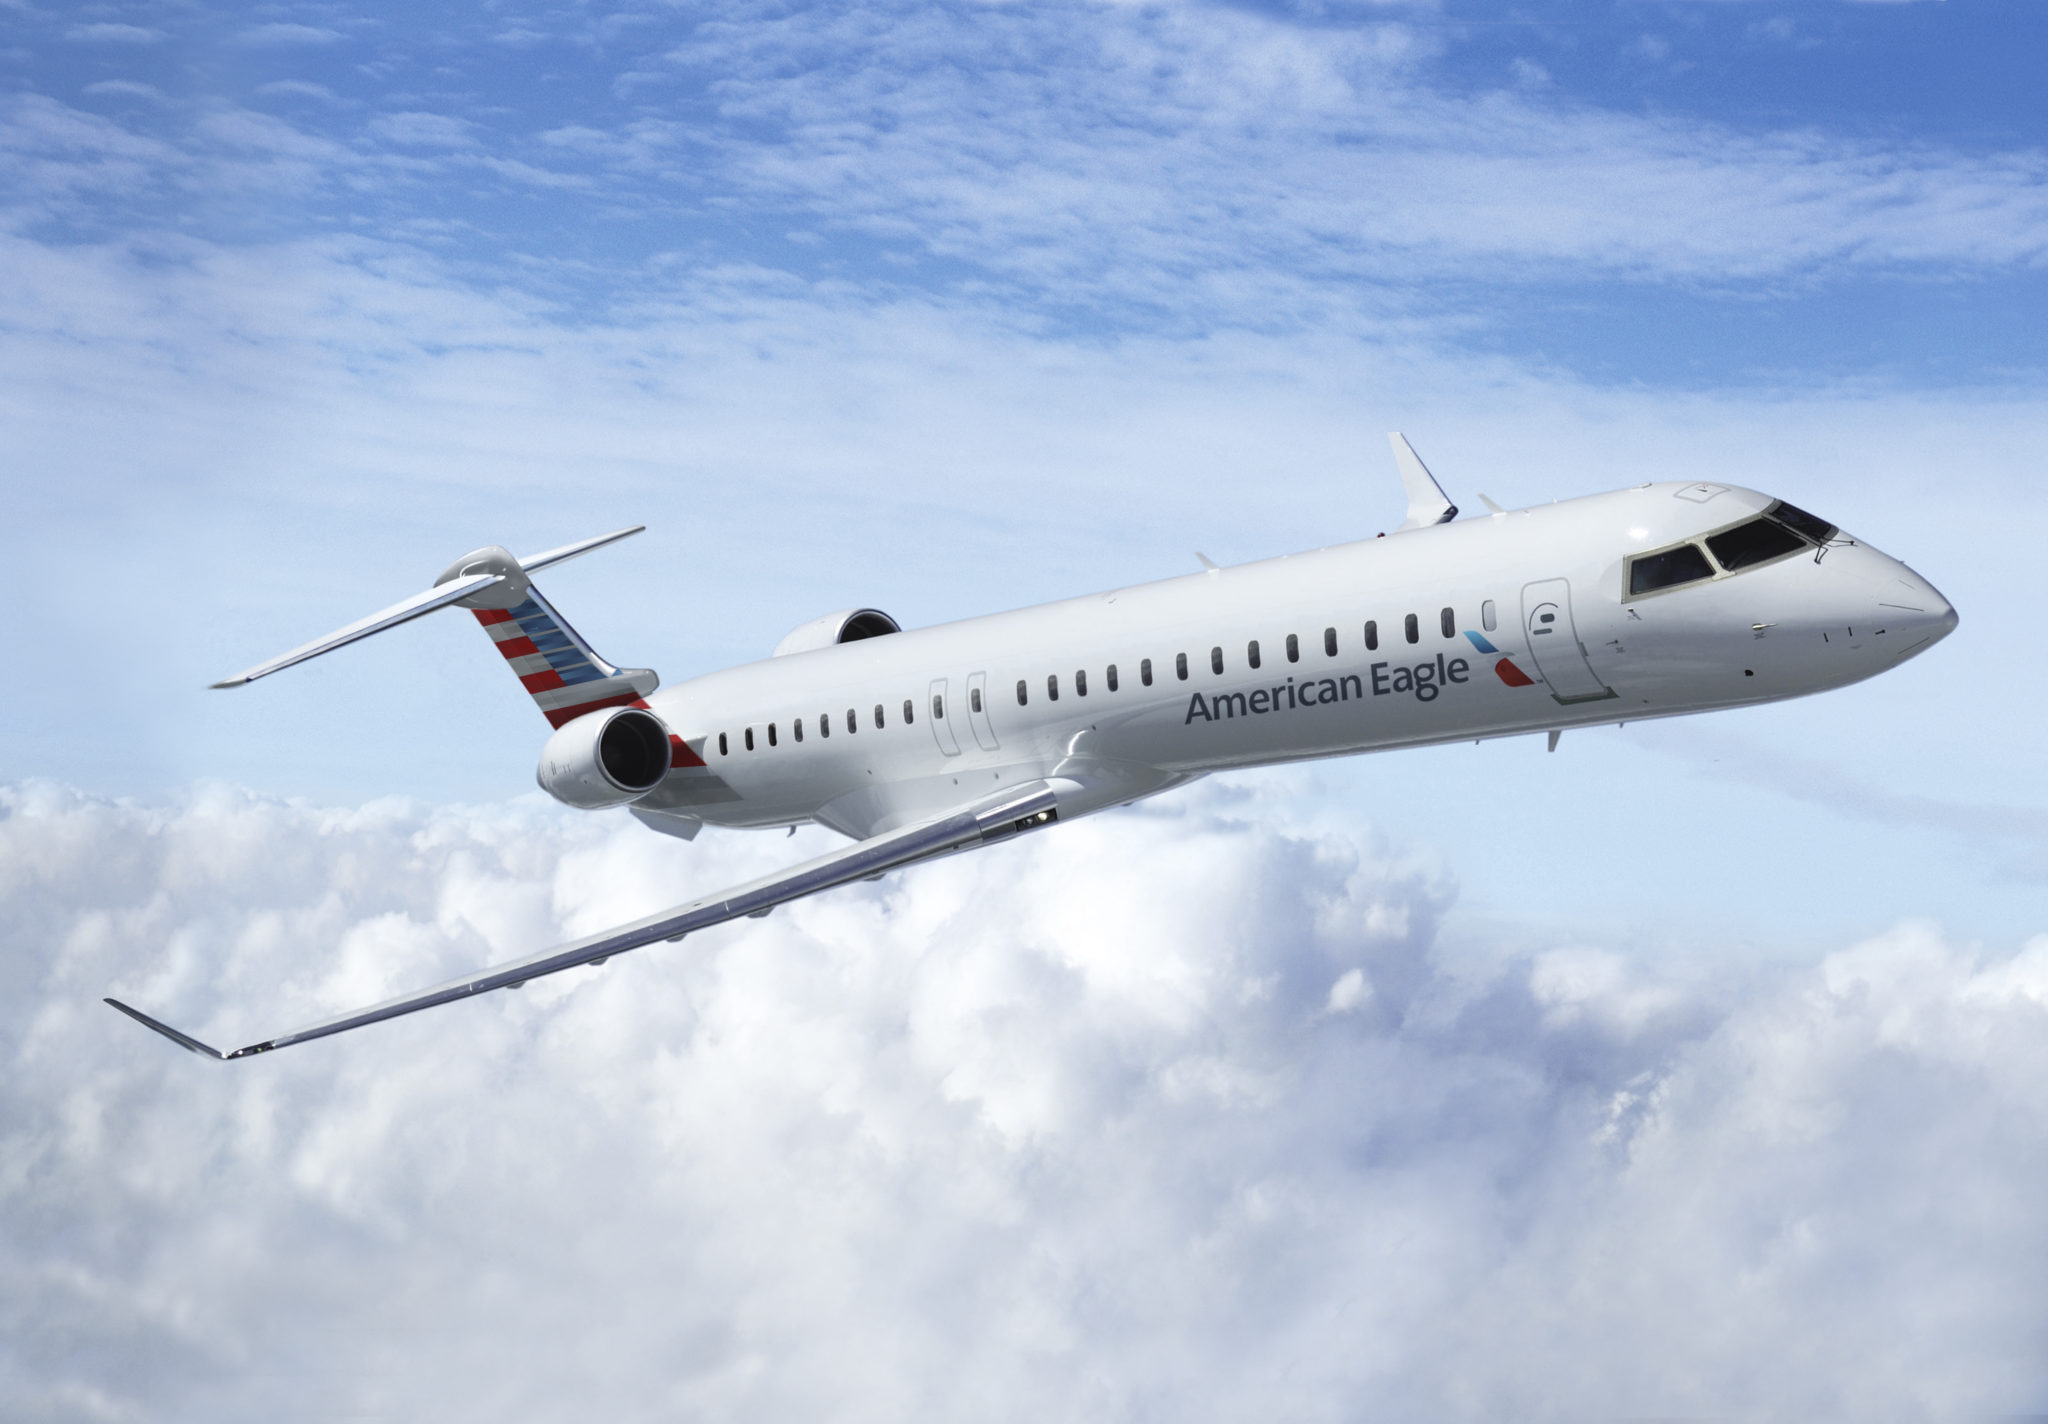 Mitsubishi in negotiations with Bombardier to acquire the CRJ